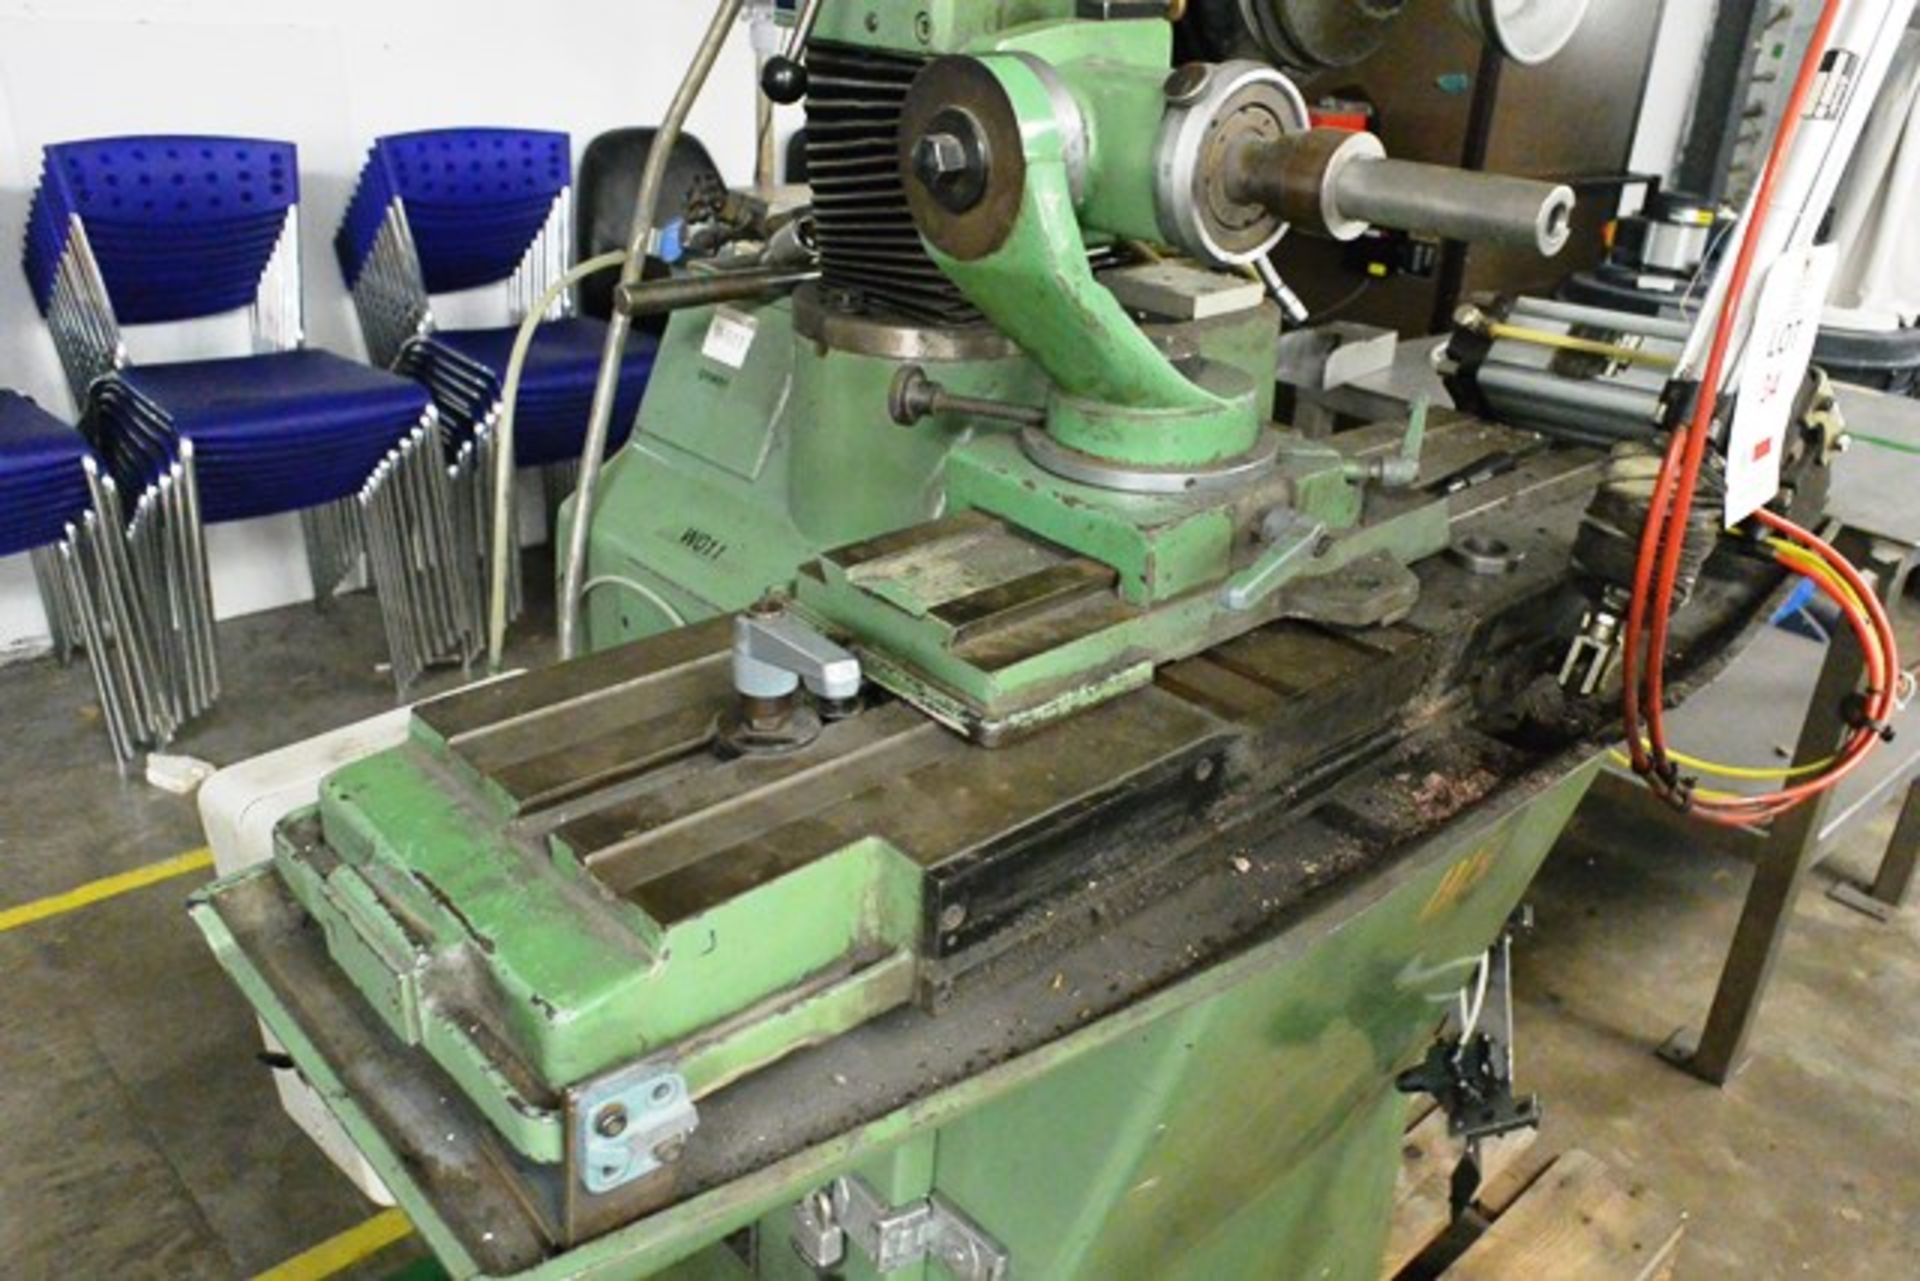 Zuber horizontal surface grinder, machine no. 06013, approx table dimension 900 x 270mm - Image 4 of 7